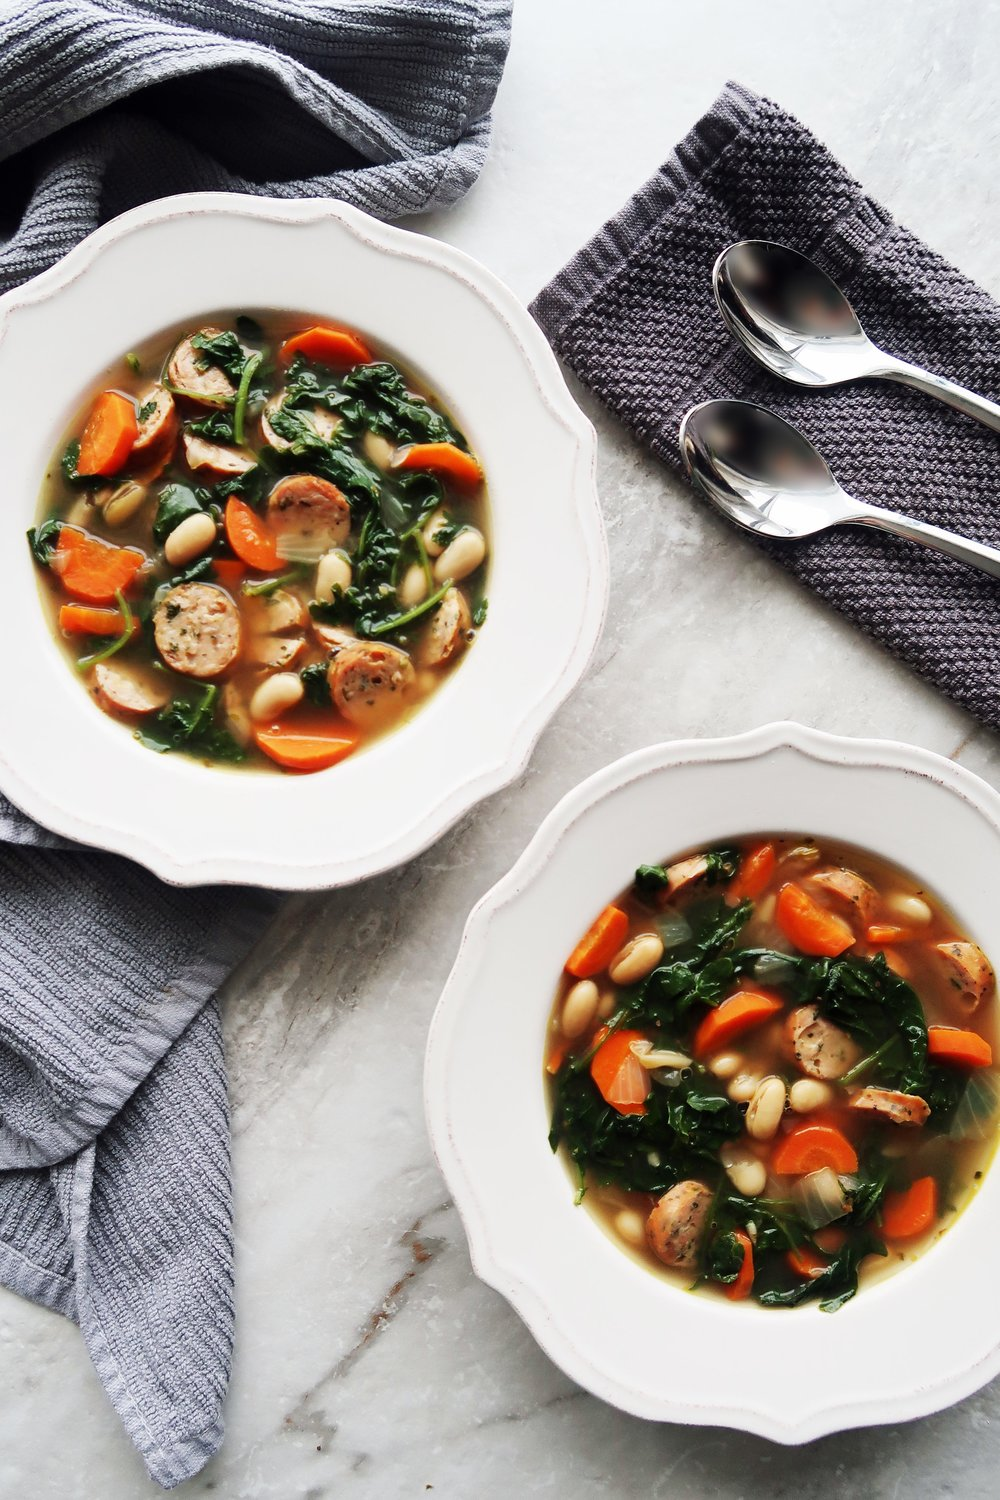 Two bowls of Kale, White Bean, and Sausage Soup